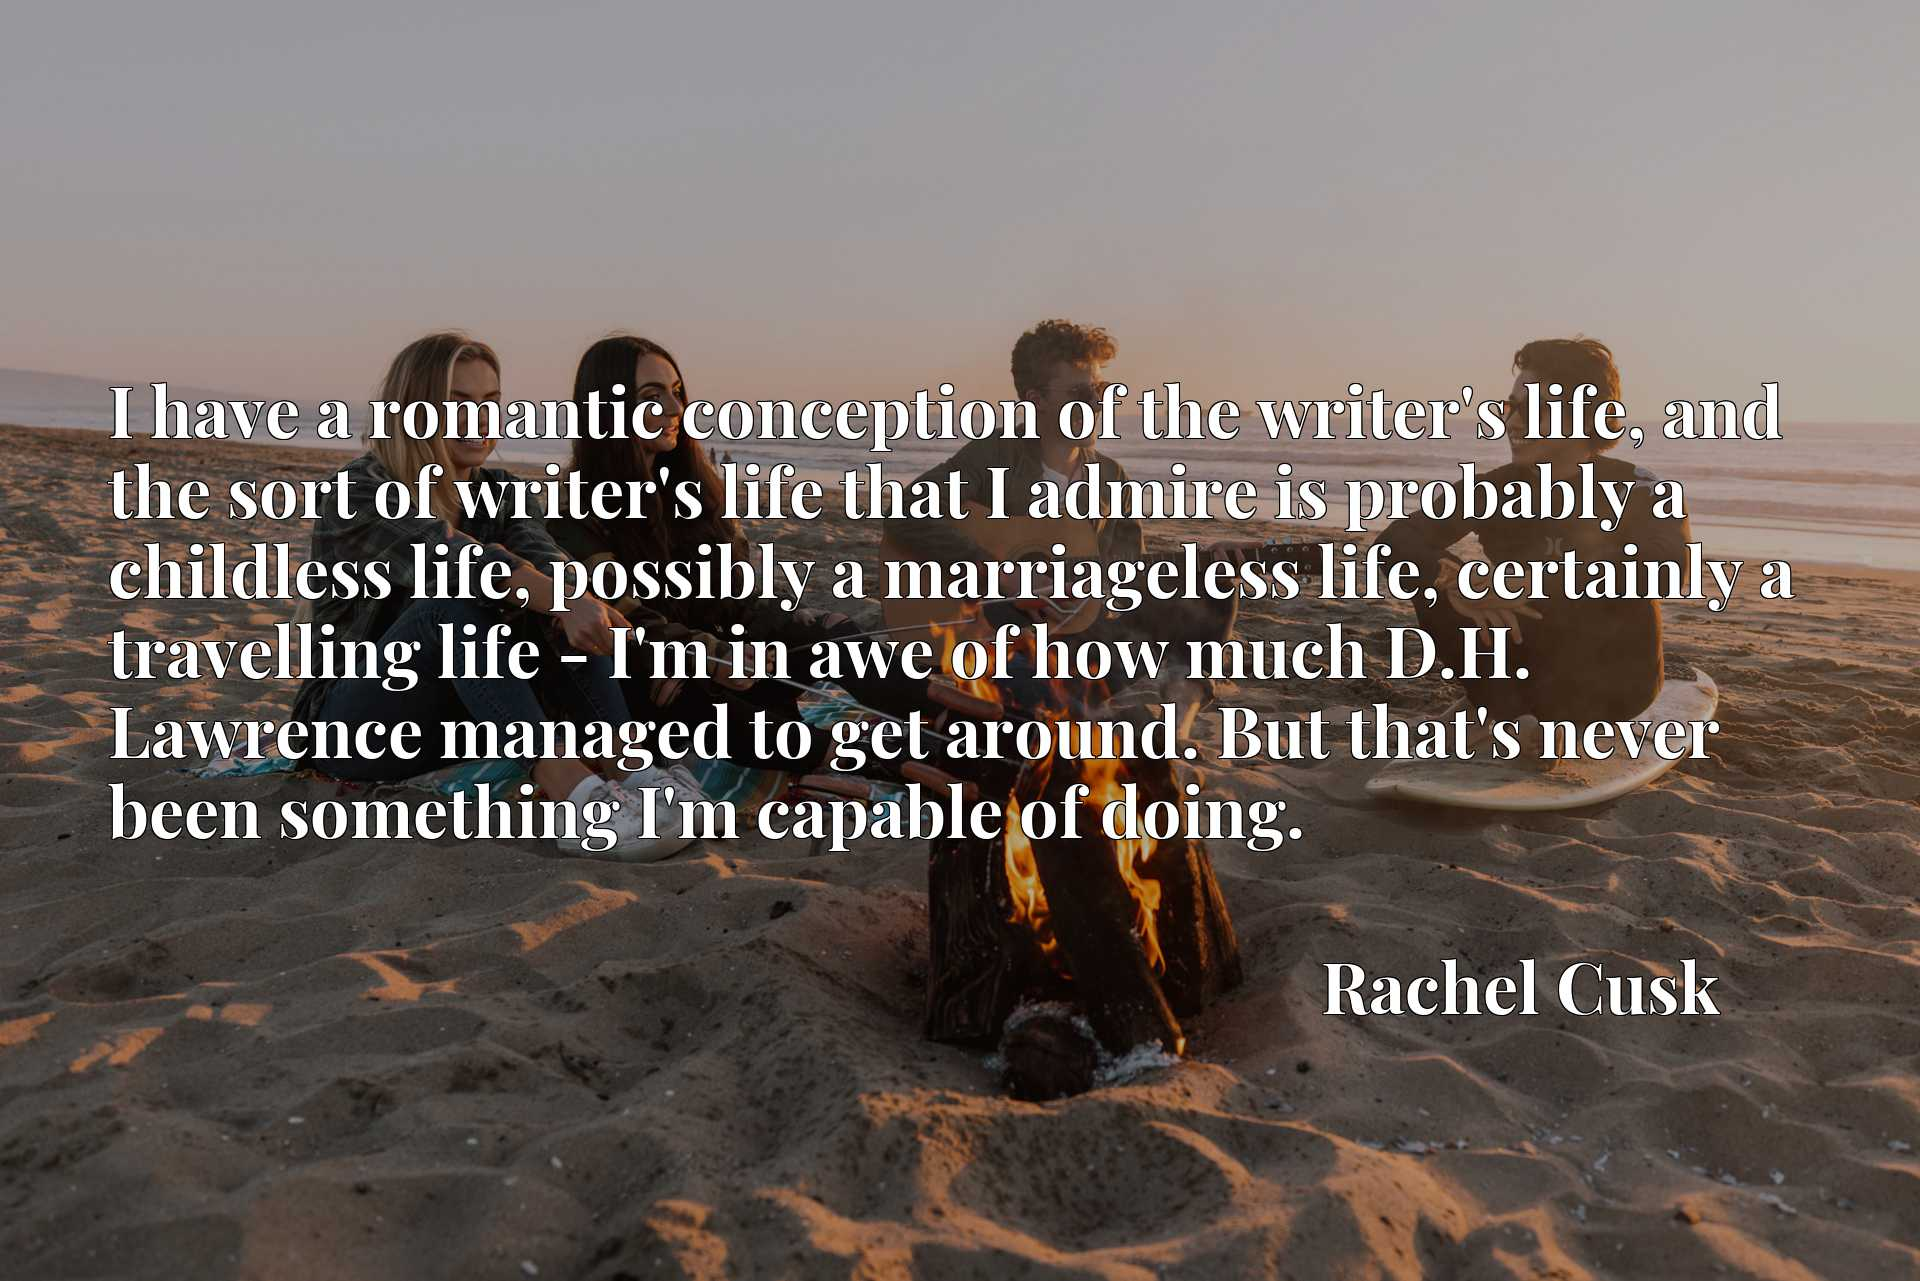 I have a romantic conception of the writer's life, and the sort of writer's life that I admire is probably a childless life, possibly a marriageless life, certainly a travelling life - I'm in awe of how much D.H. Lawrence managed to get around. But that's never been something I'm capable of doing.